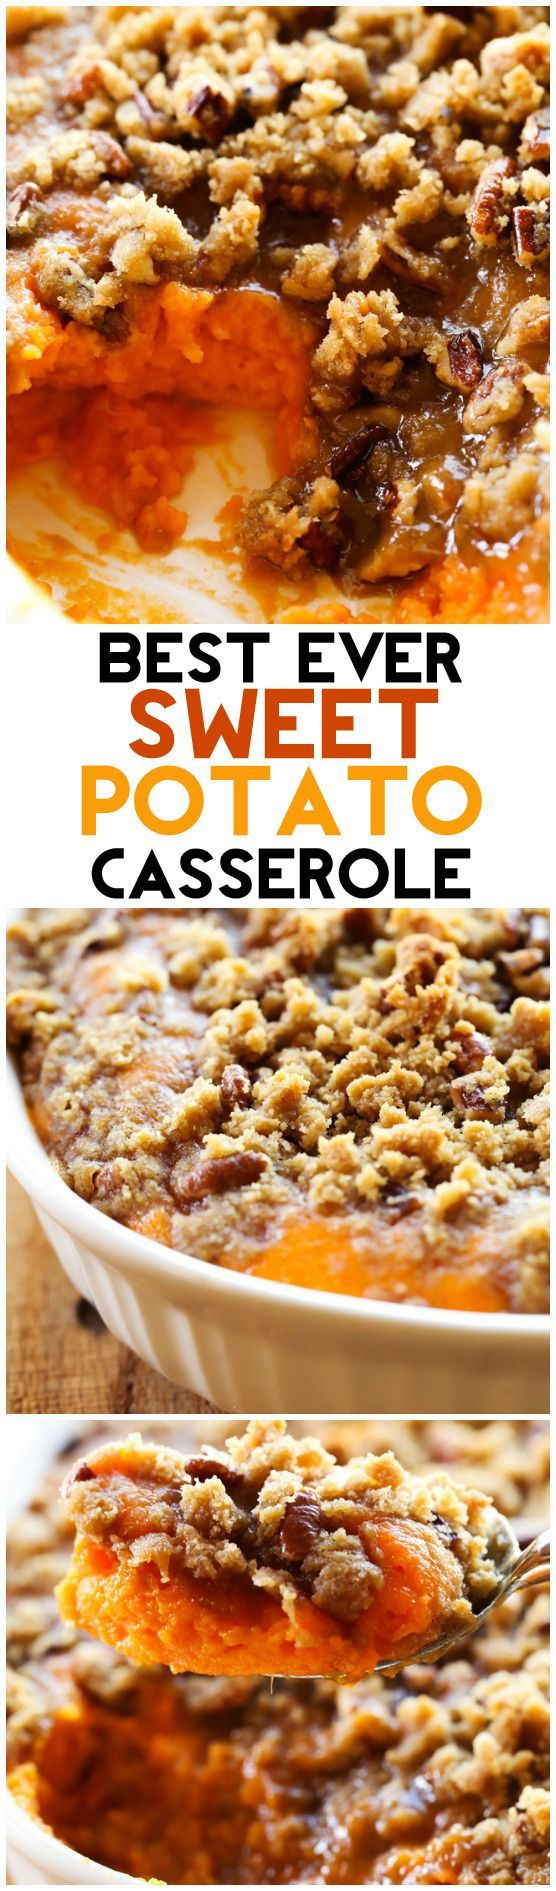 Sweet Potatoes Thanksgiving Side Dishes  Sweet Potato Casserole Thanksgiving Side Dish